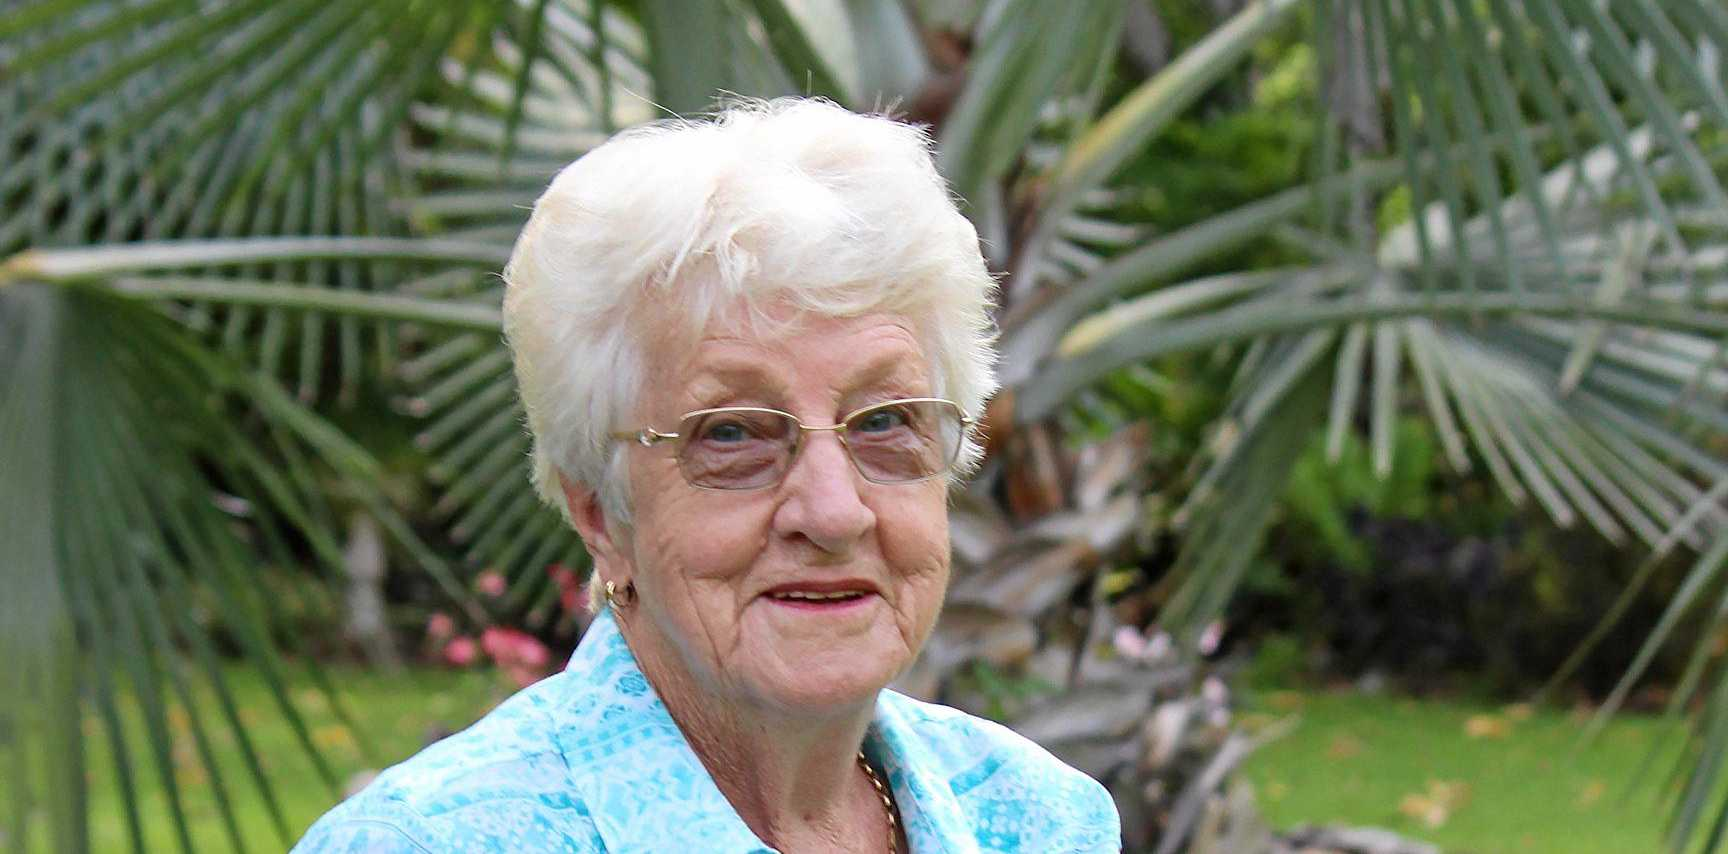 TALES OF THE PAST: At 82 years of age, fifth generation Isis Shire resident Doreen Cole has penned a book, complete with many photographs and historical tales of the early years of Buxton.